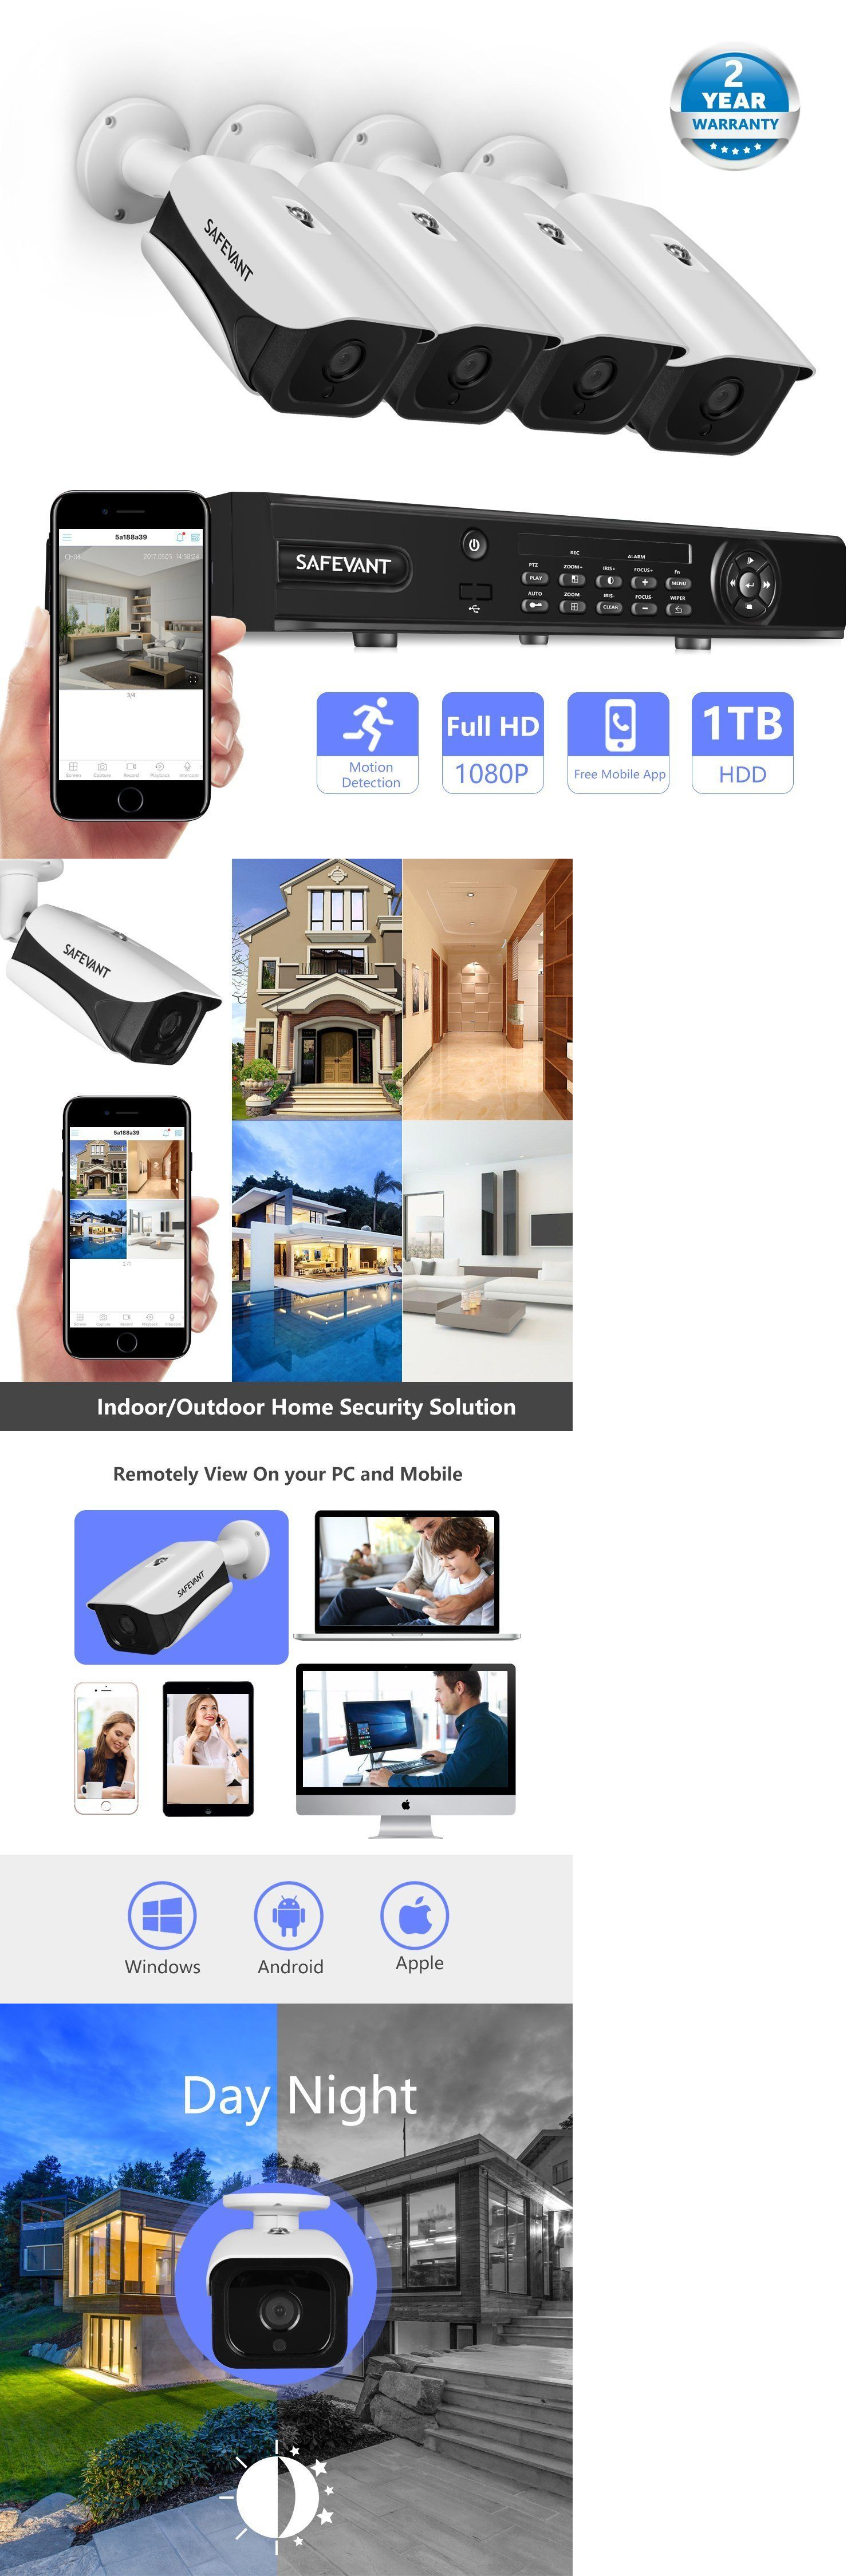 CCTV Systems 159909: Safevant 4 Channel 1080P Ahd Home Security ...